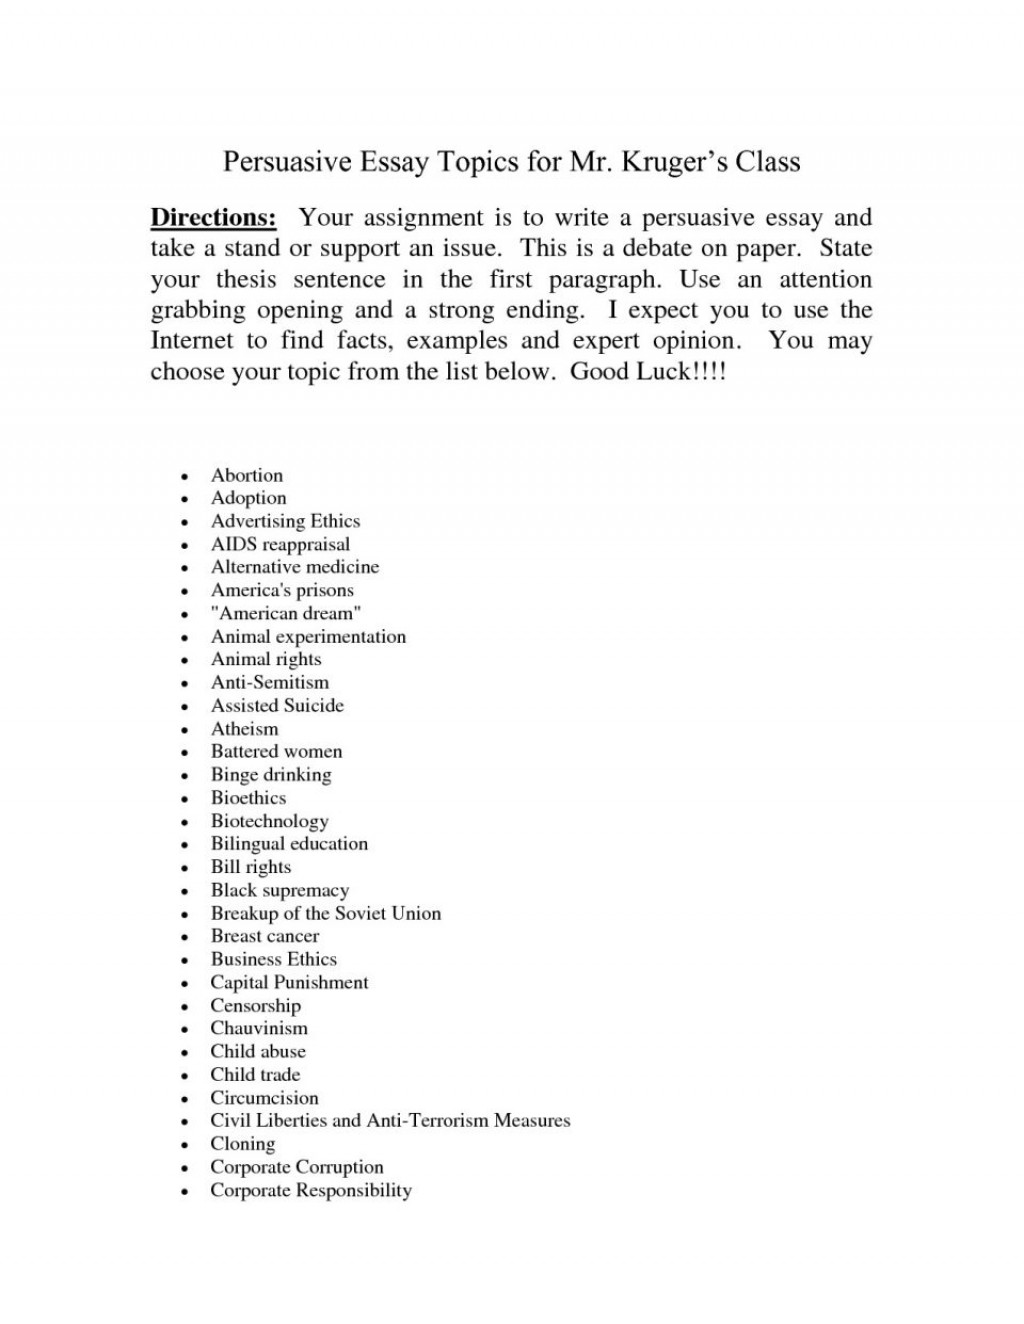 017 Topic For Essay Barca Fontanacountryinn Within Good Persuasive Narrative Topics To Write Abo Easy About Personal Descriptive Research Paper Informative Synthesis College 960x1242 Sensational Interesting A Ideas Reddit In The Philippines Large